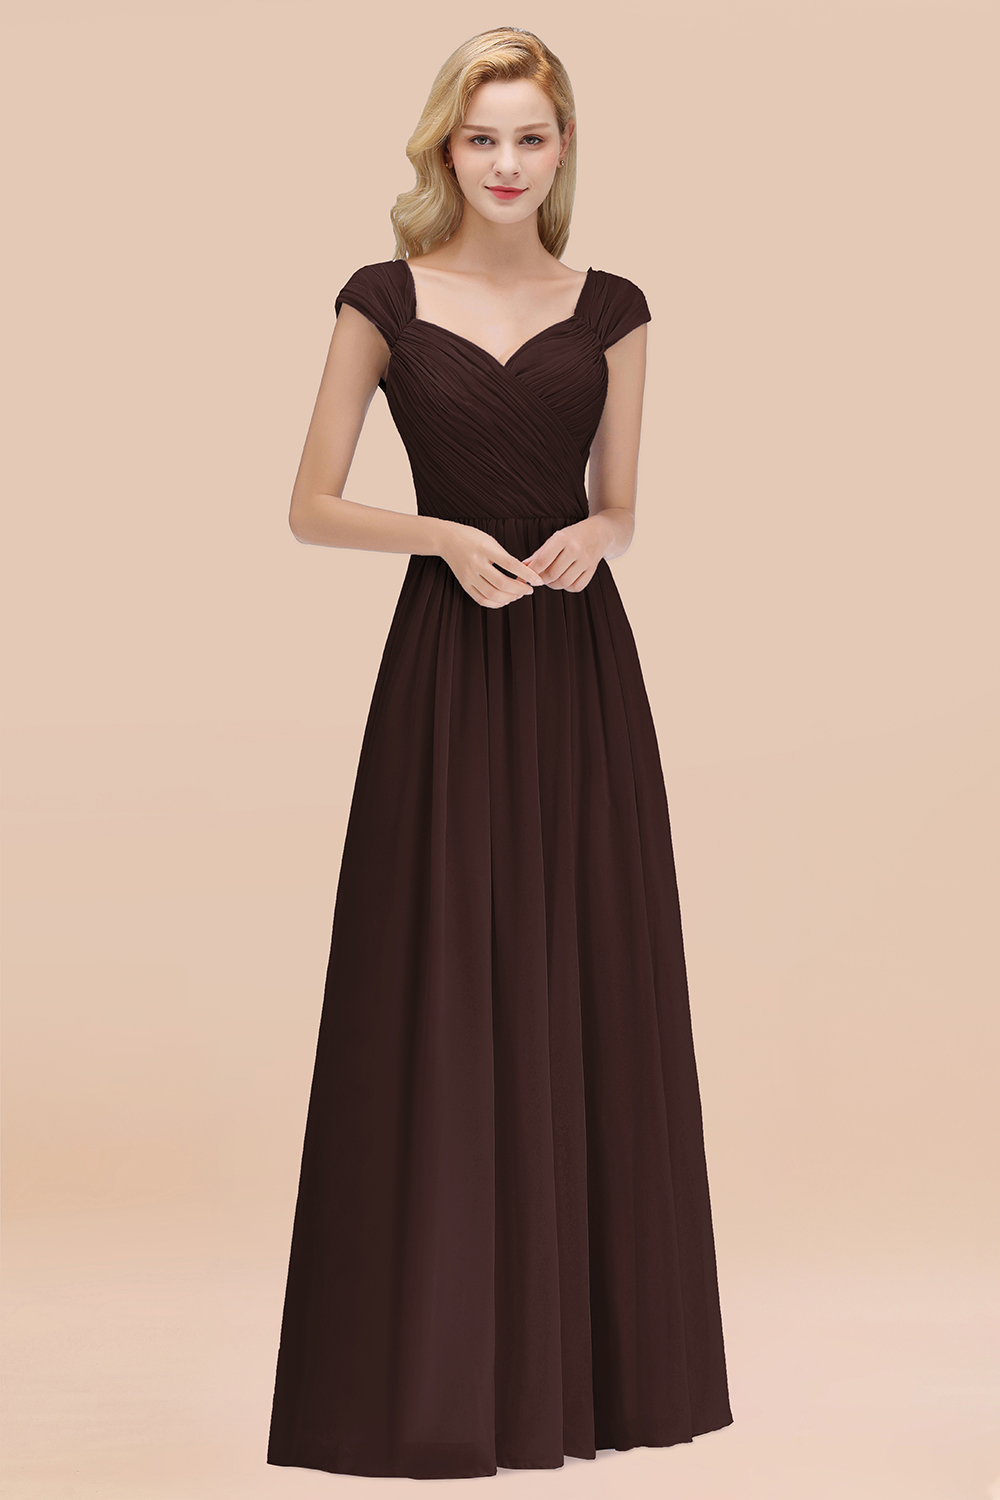 BMbridal Modest Chiffon Sweetheart Sleeveless Affordable Bridesmaid Dresses with Ruffles